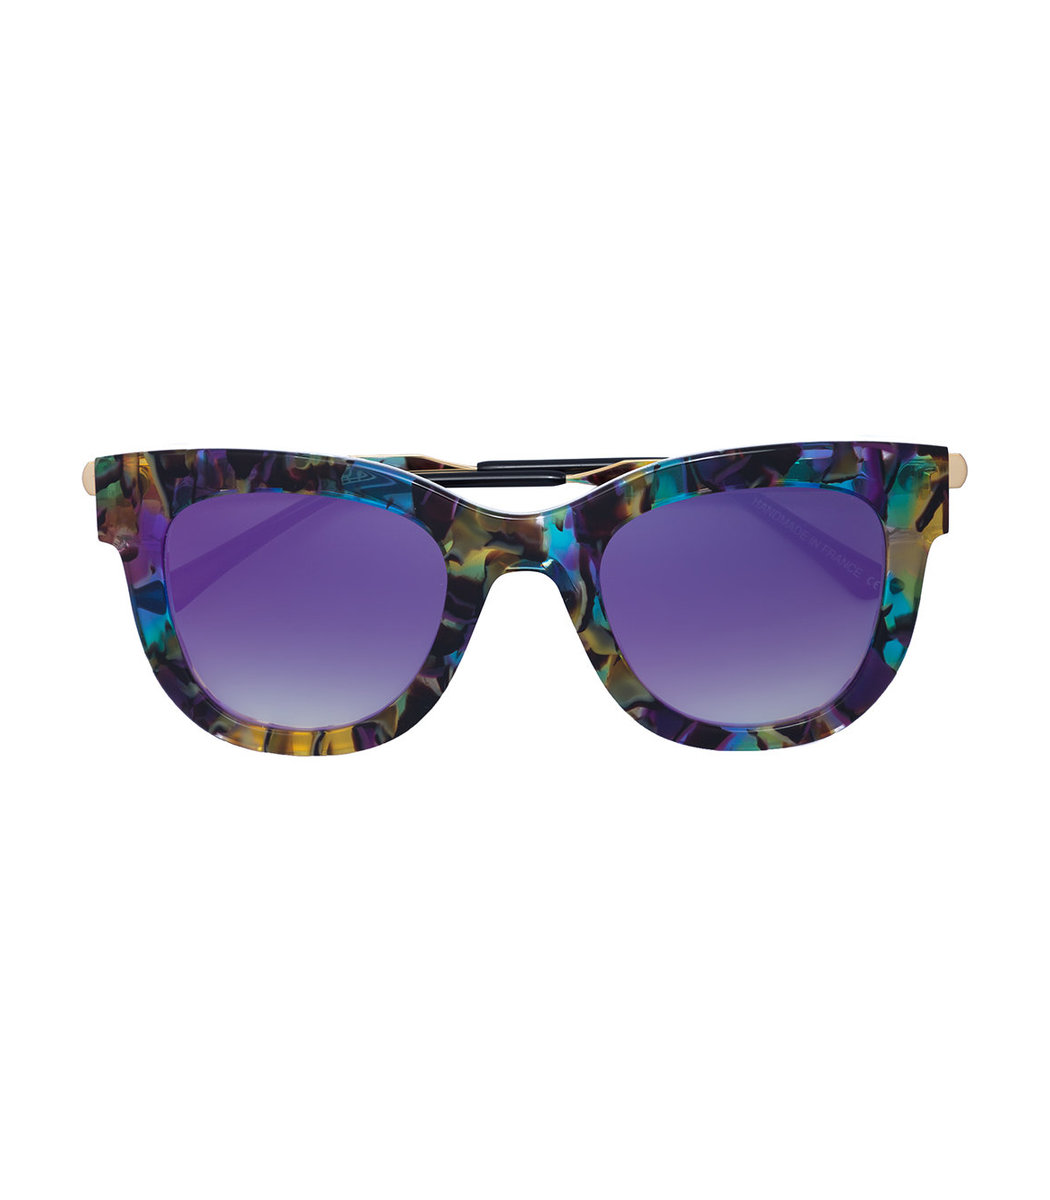 Thierry Lasry Multicolor Sexxxy Limited Edition Sunglasses